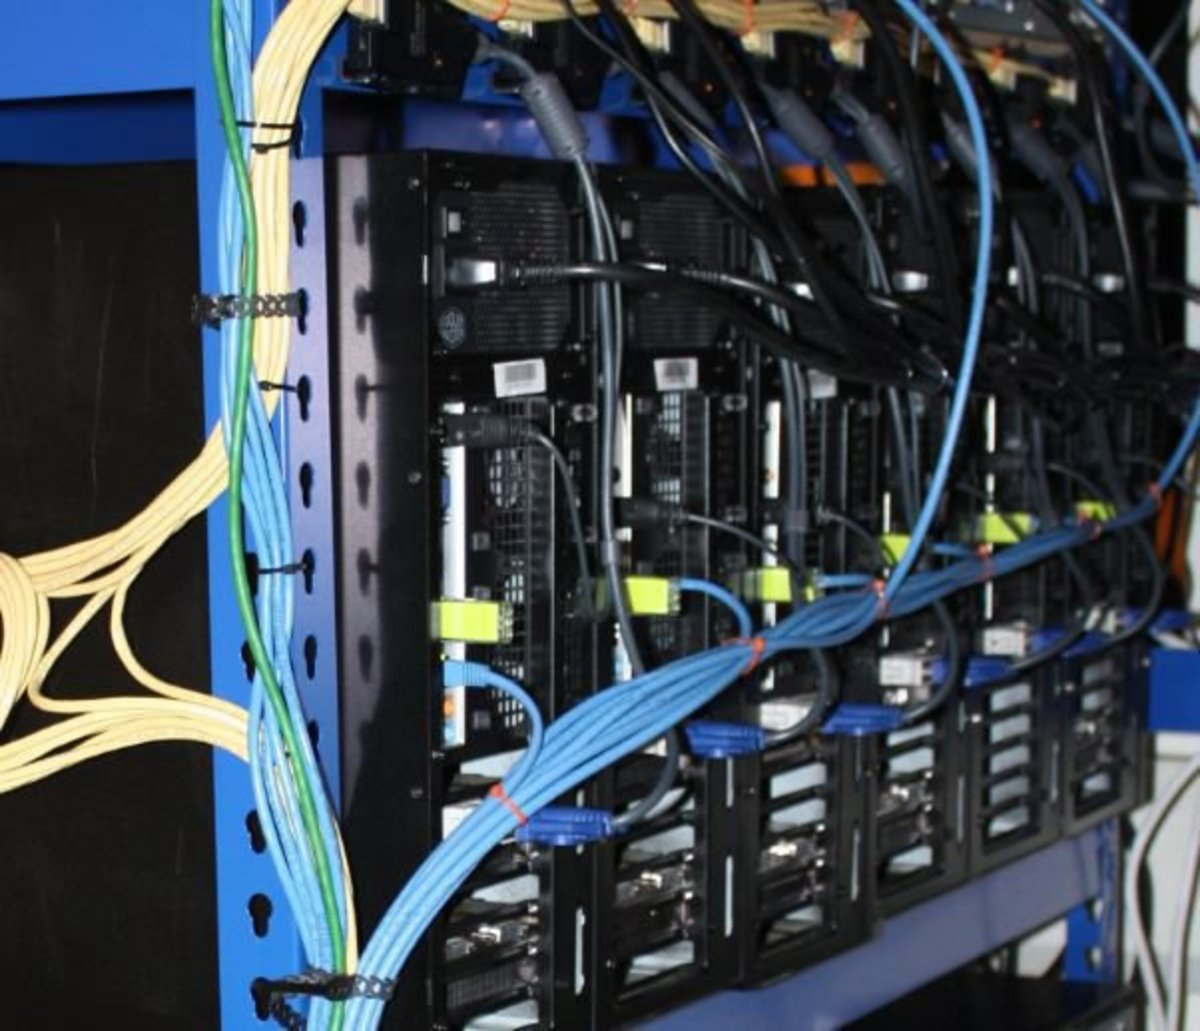 Op-ed - Selfish Mining: A 25% Attack Against the Bitcoin Network